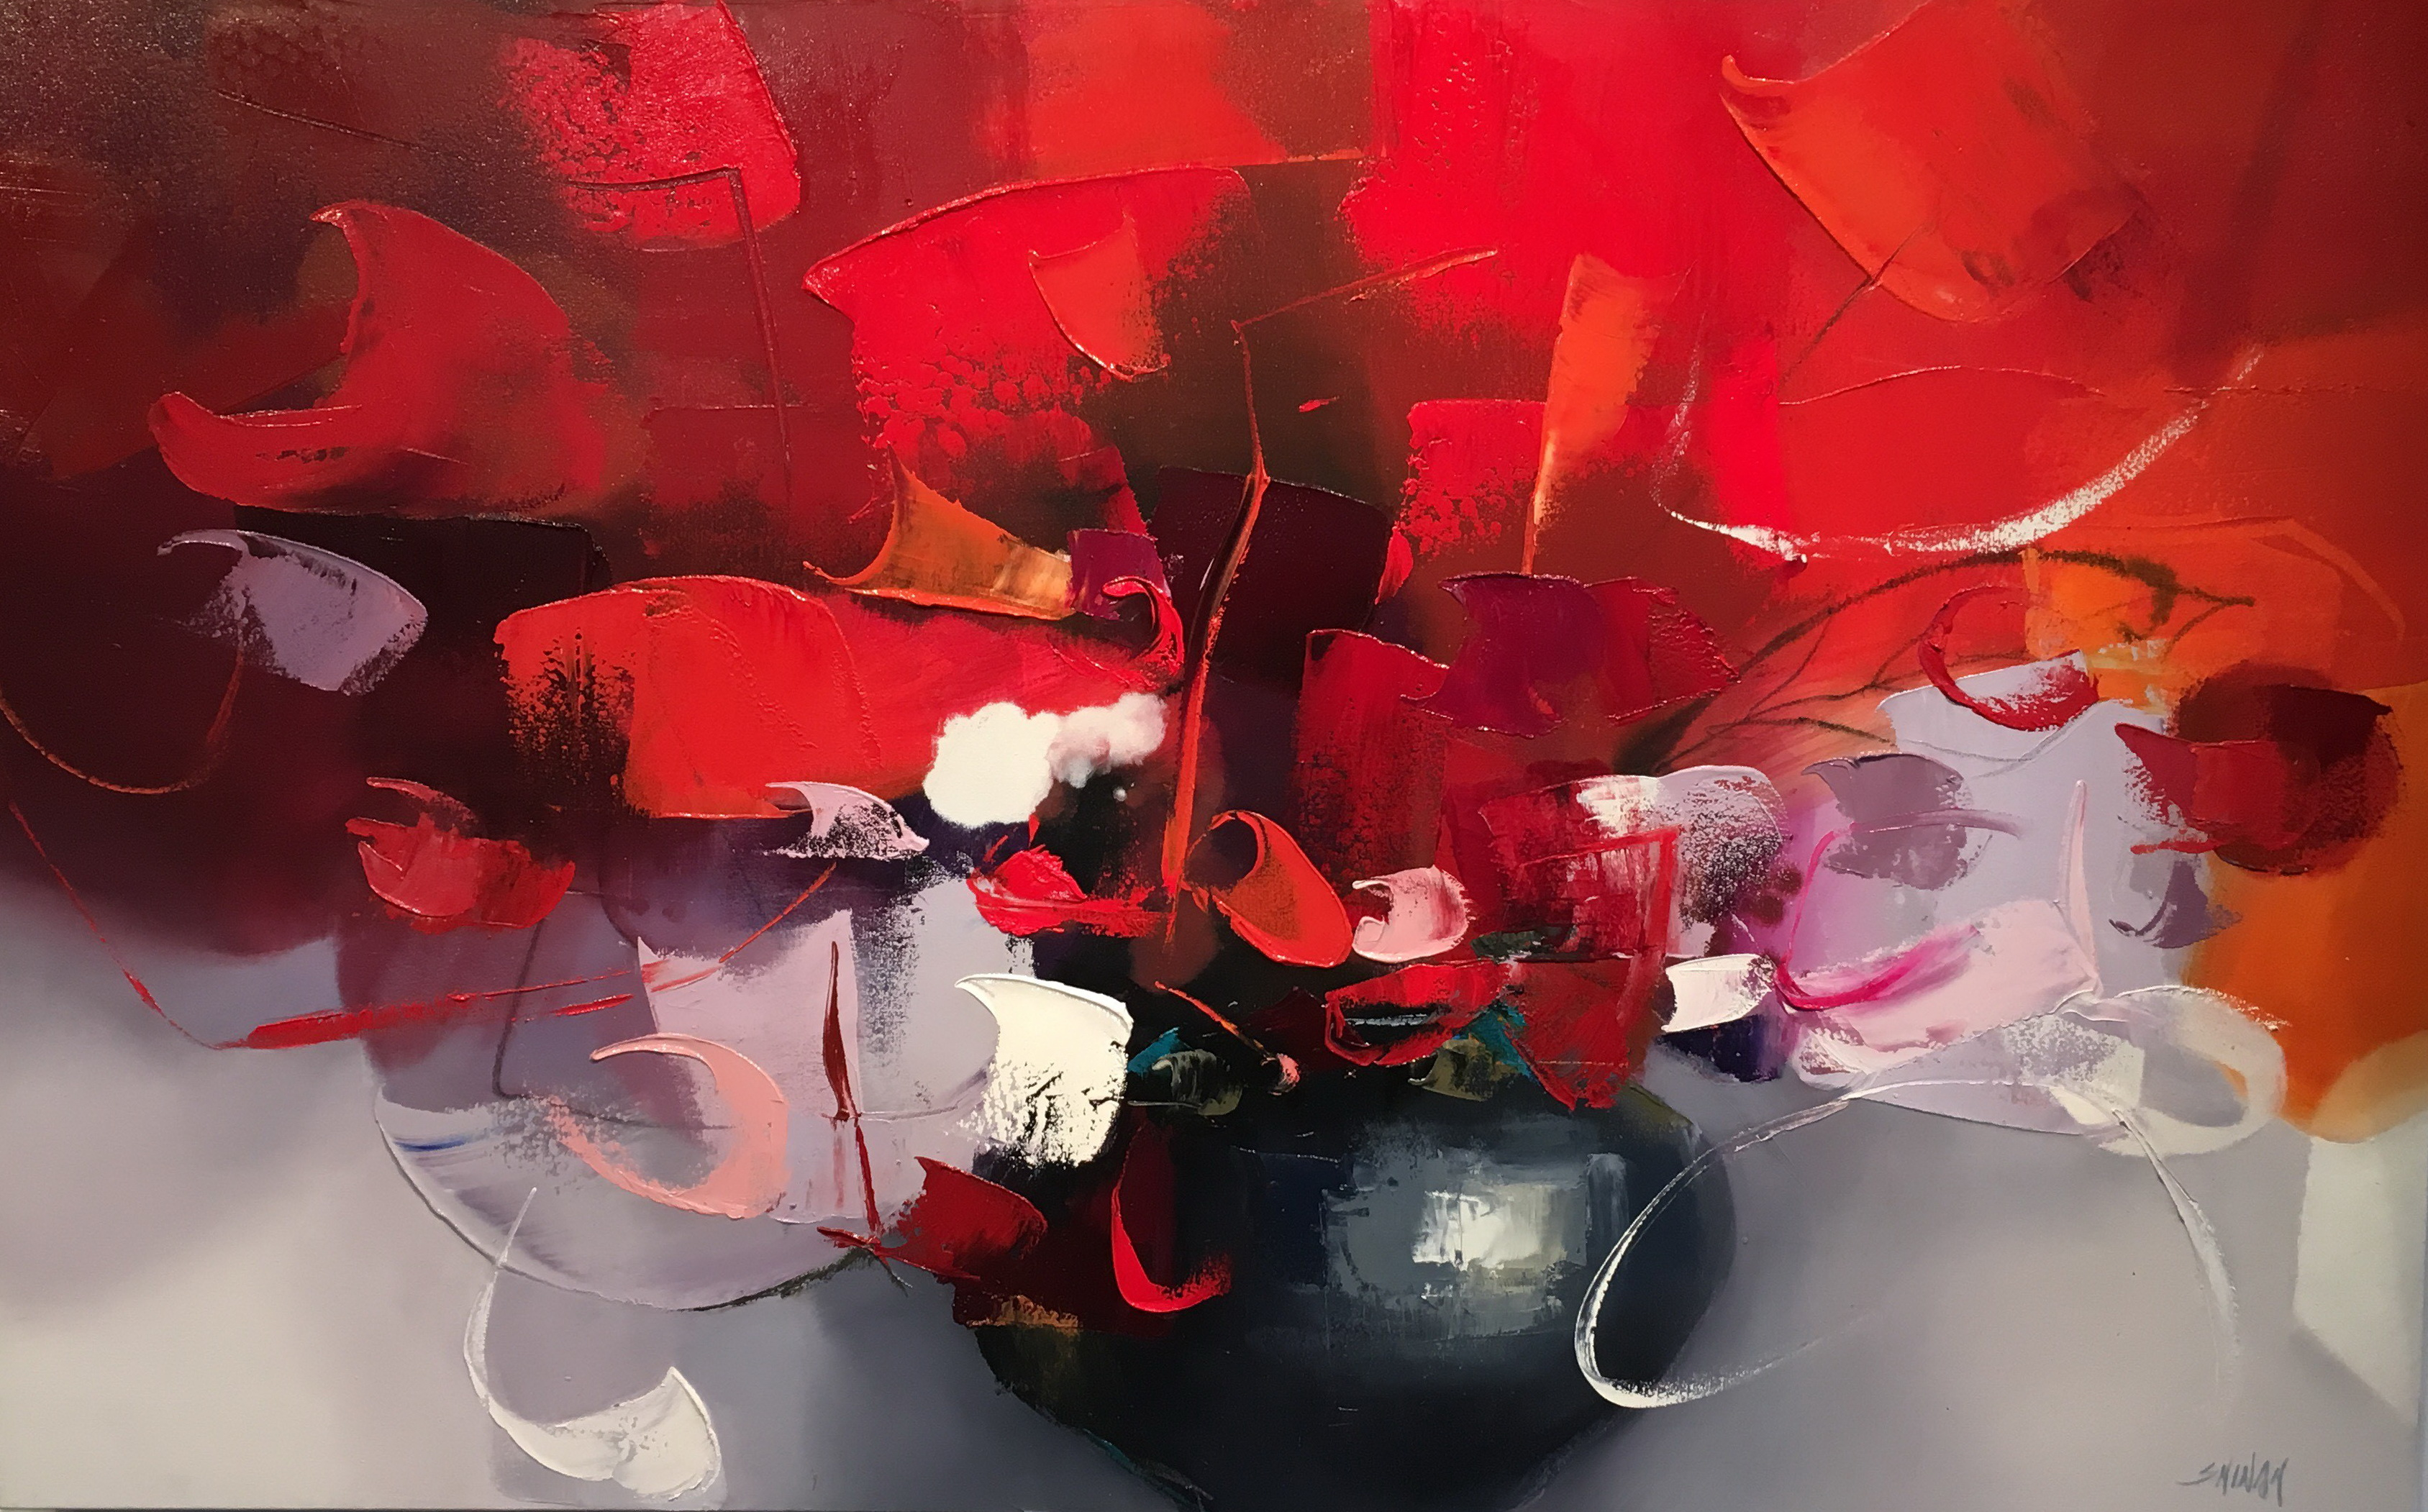 Abstract painting, Early Morning II by Shinah Lee at The Avenue Gallery, a contemporary fine art gallery in Victoria, BC, Canada.